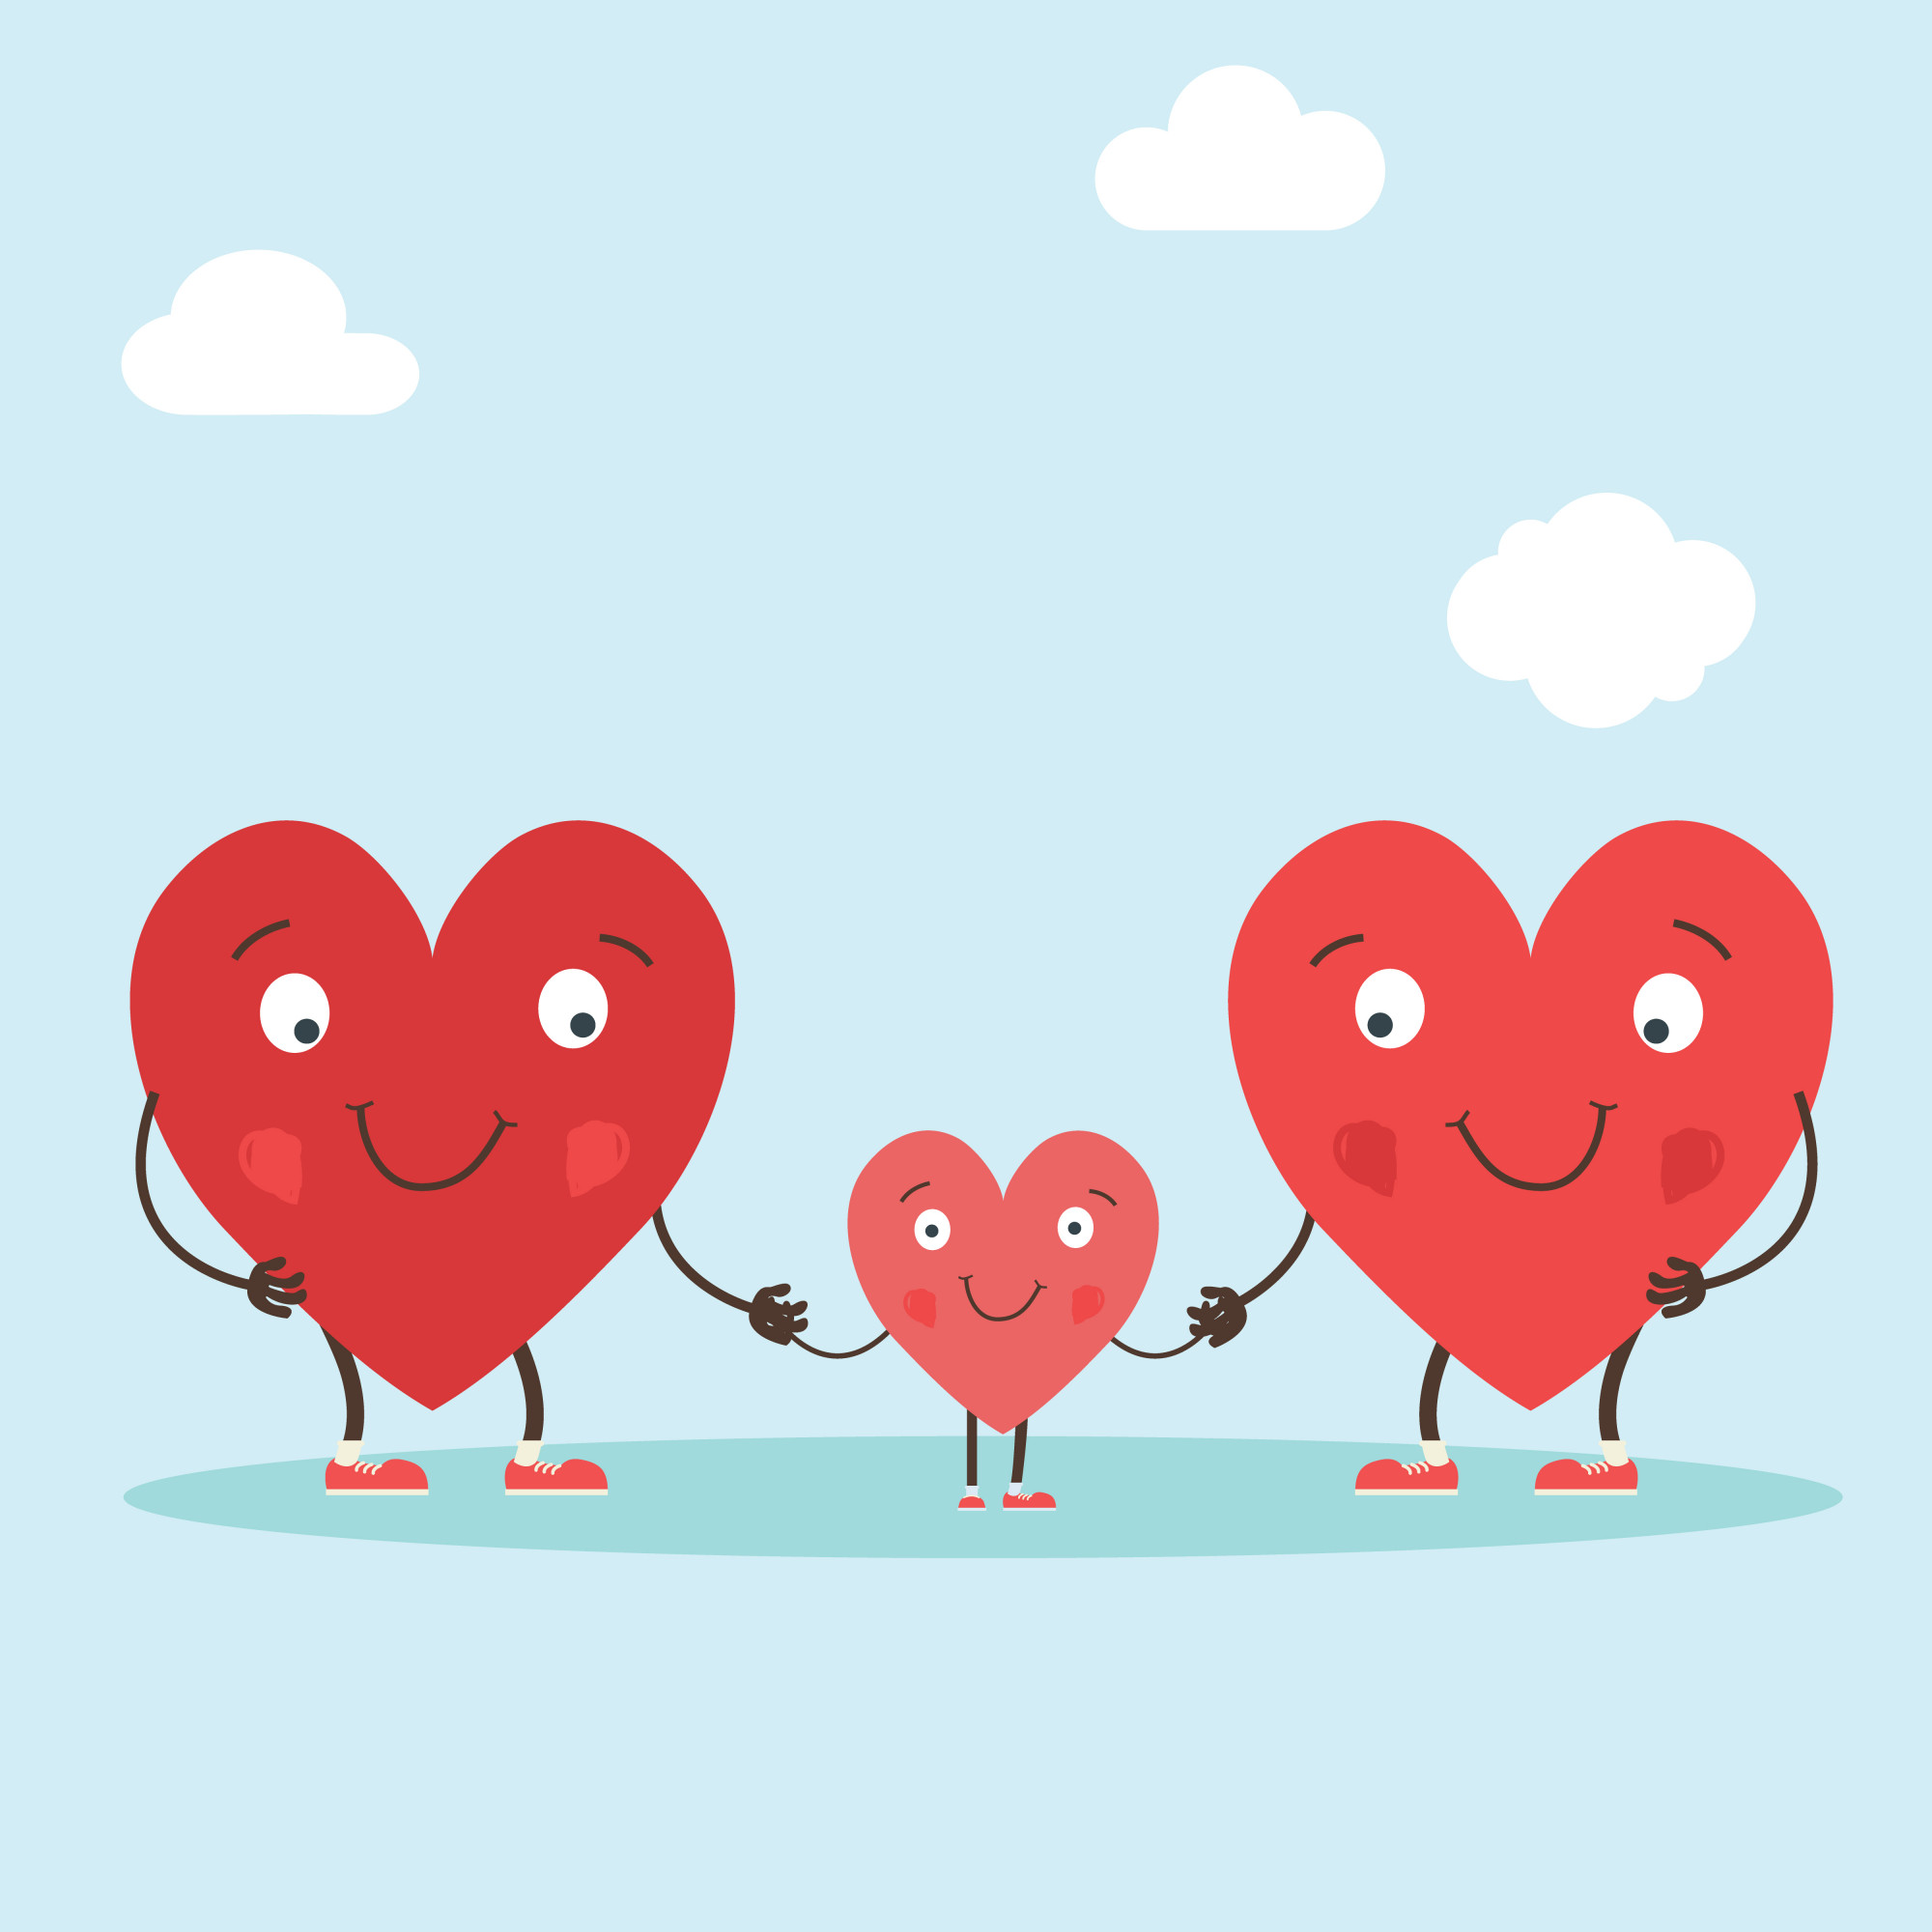 Hearts characters as symbols of love and family